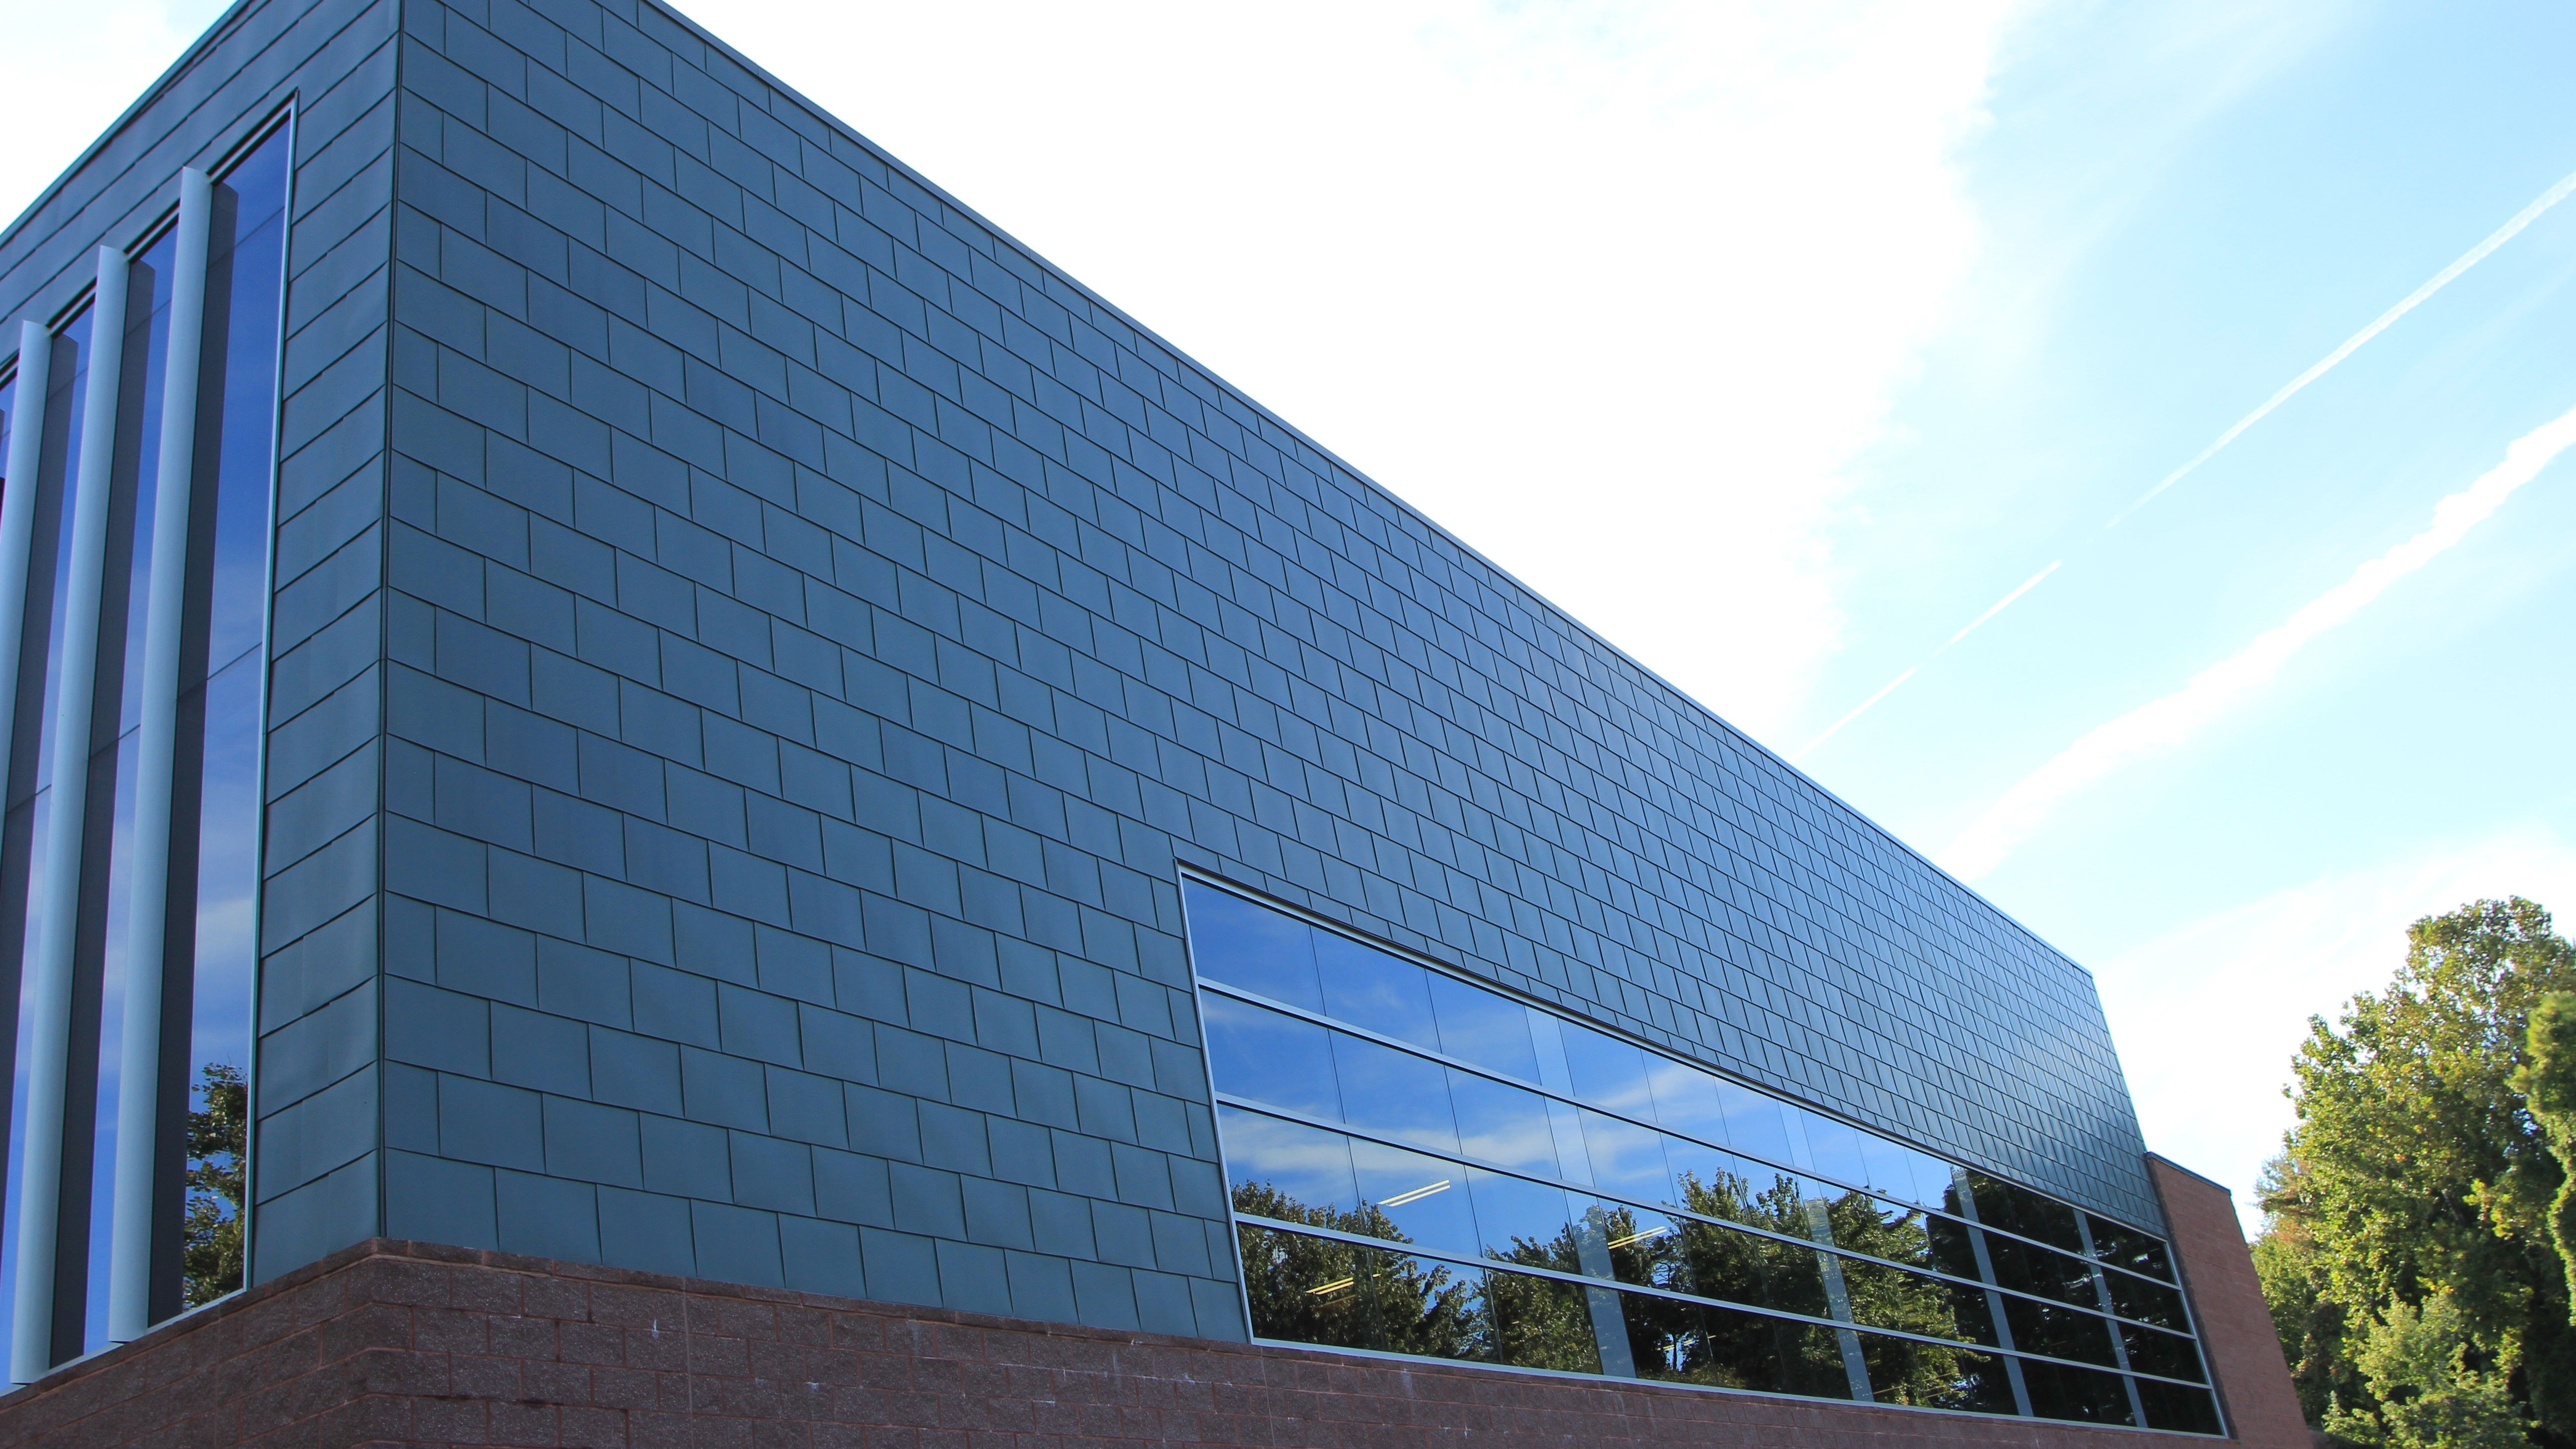 Blue Architectural Roof